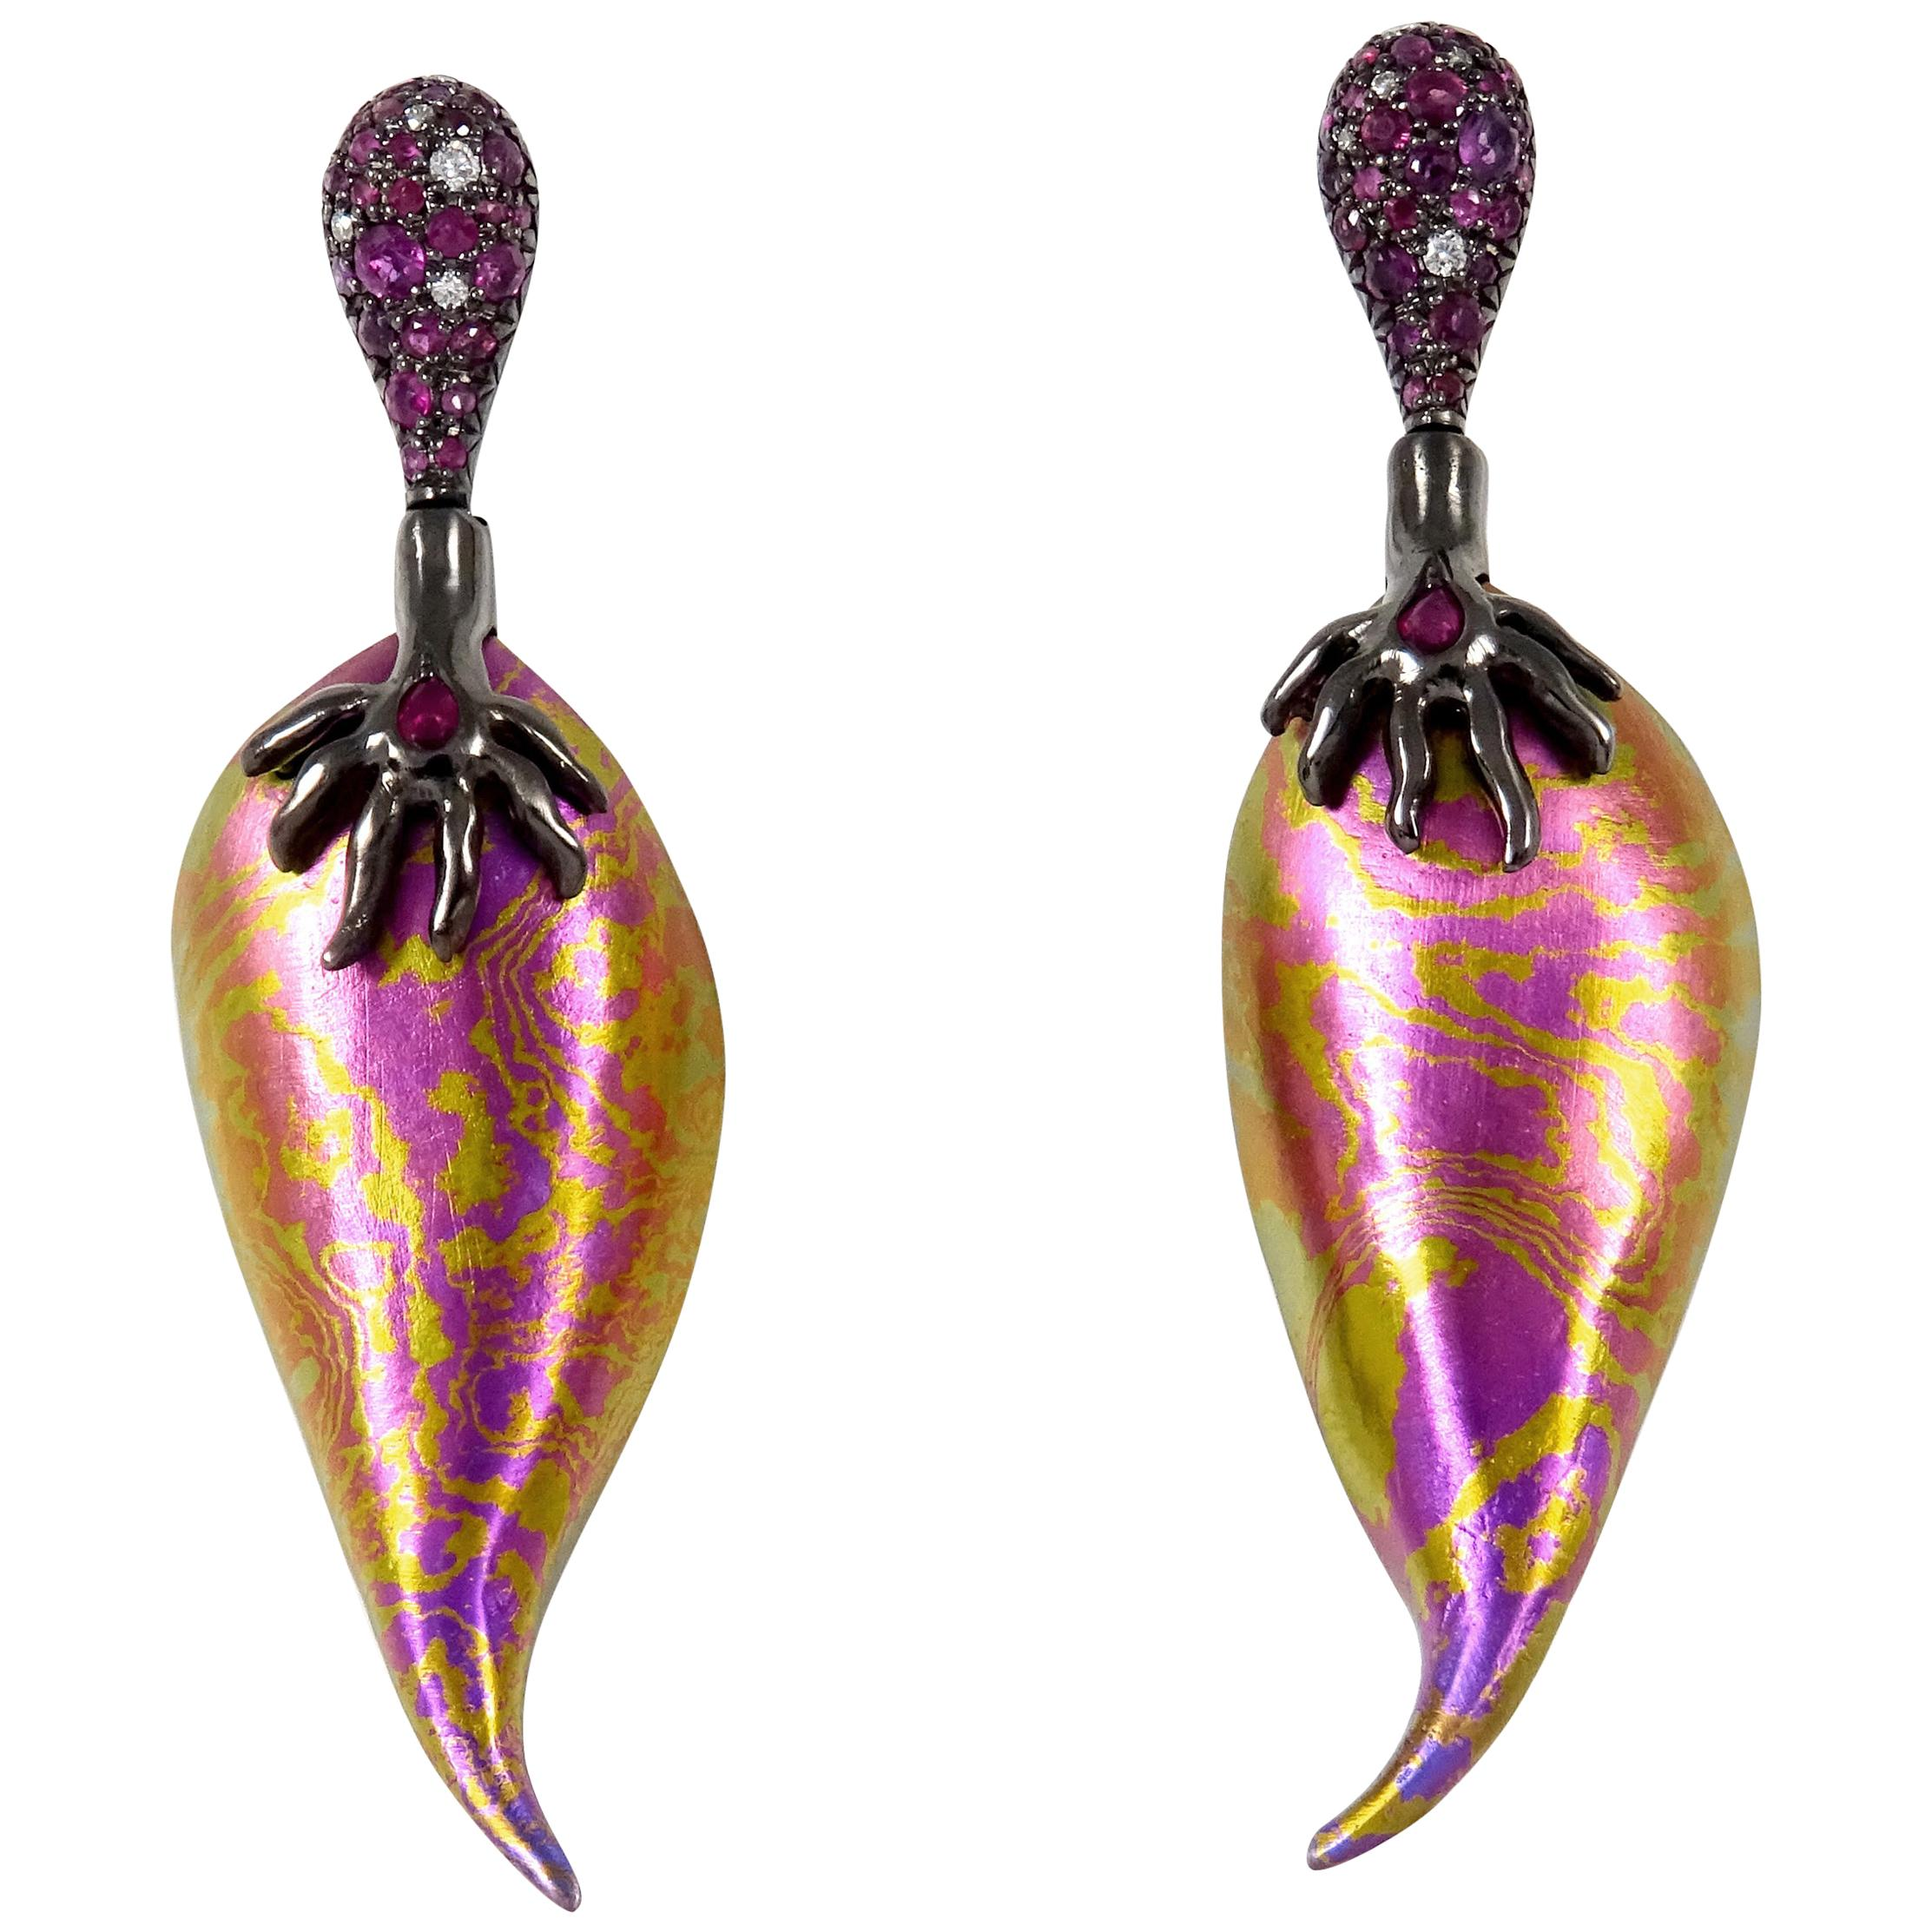 Diamonds Rubies 18 Karat Gold Sterling Silver Timascus Earrings One of a Kind